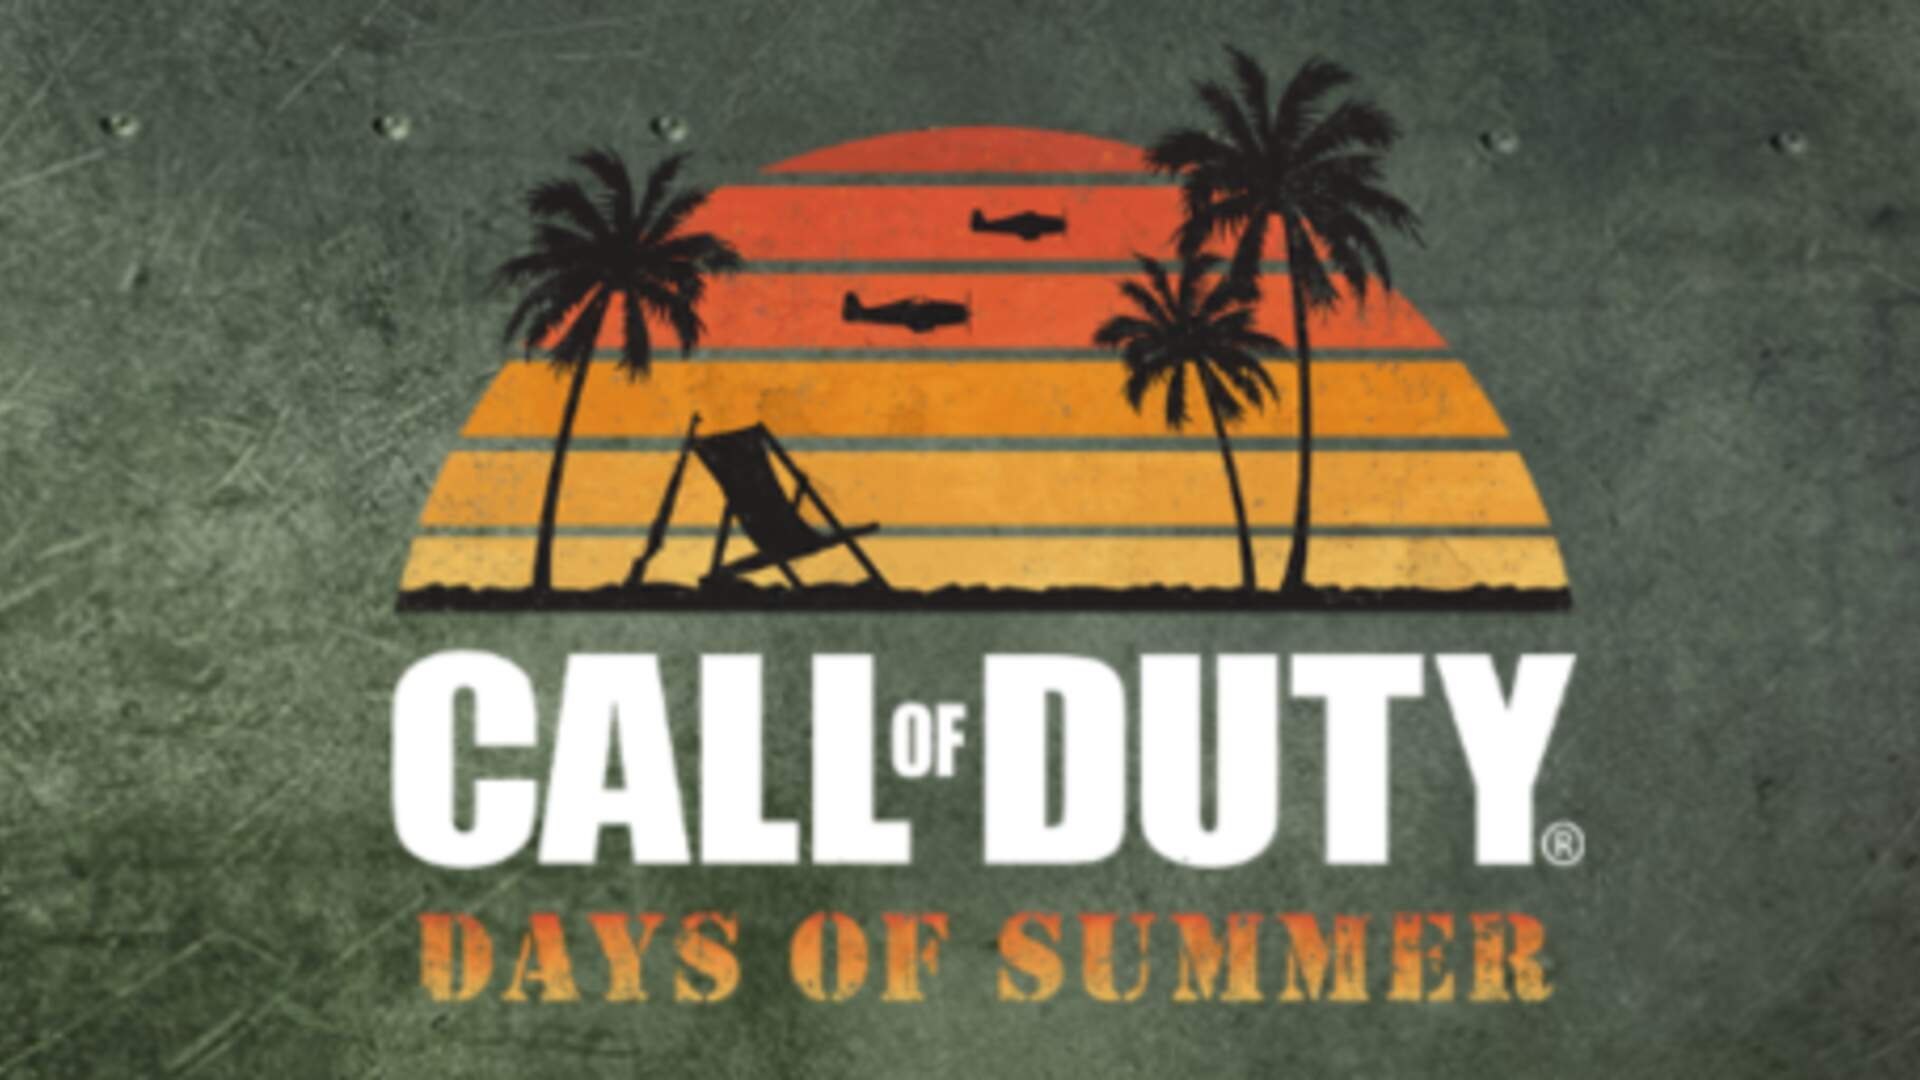 Call of Duty WW2 Days of Summer Event - Sandbox Map, Dogfighting, New Weapons, Gear, Community Challenges, Black Ops 3 Days of Summer